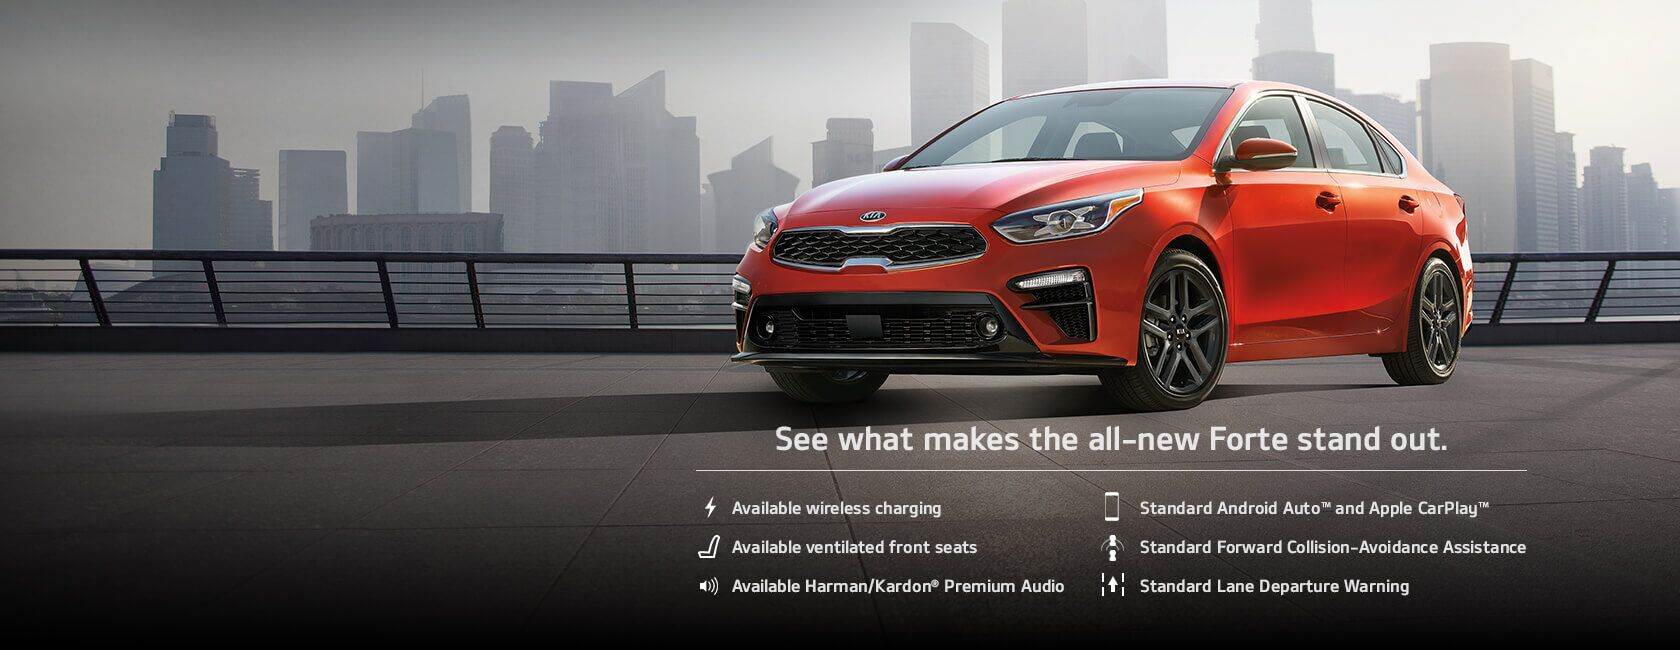 2019 Kia Forte in Slidell, LA